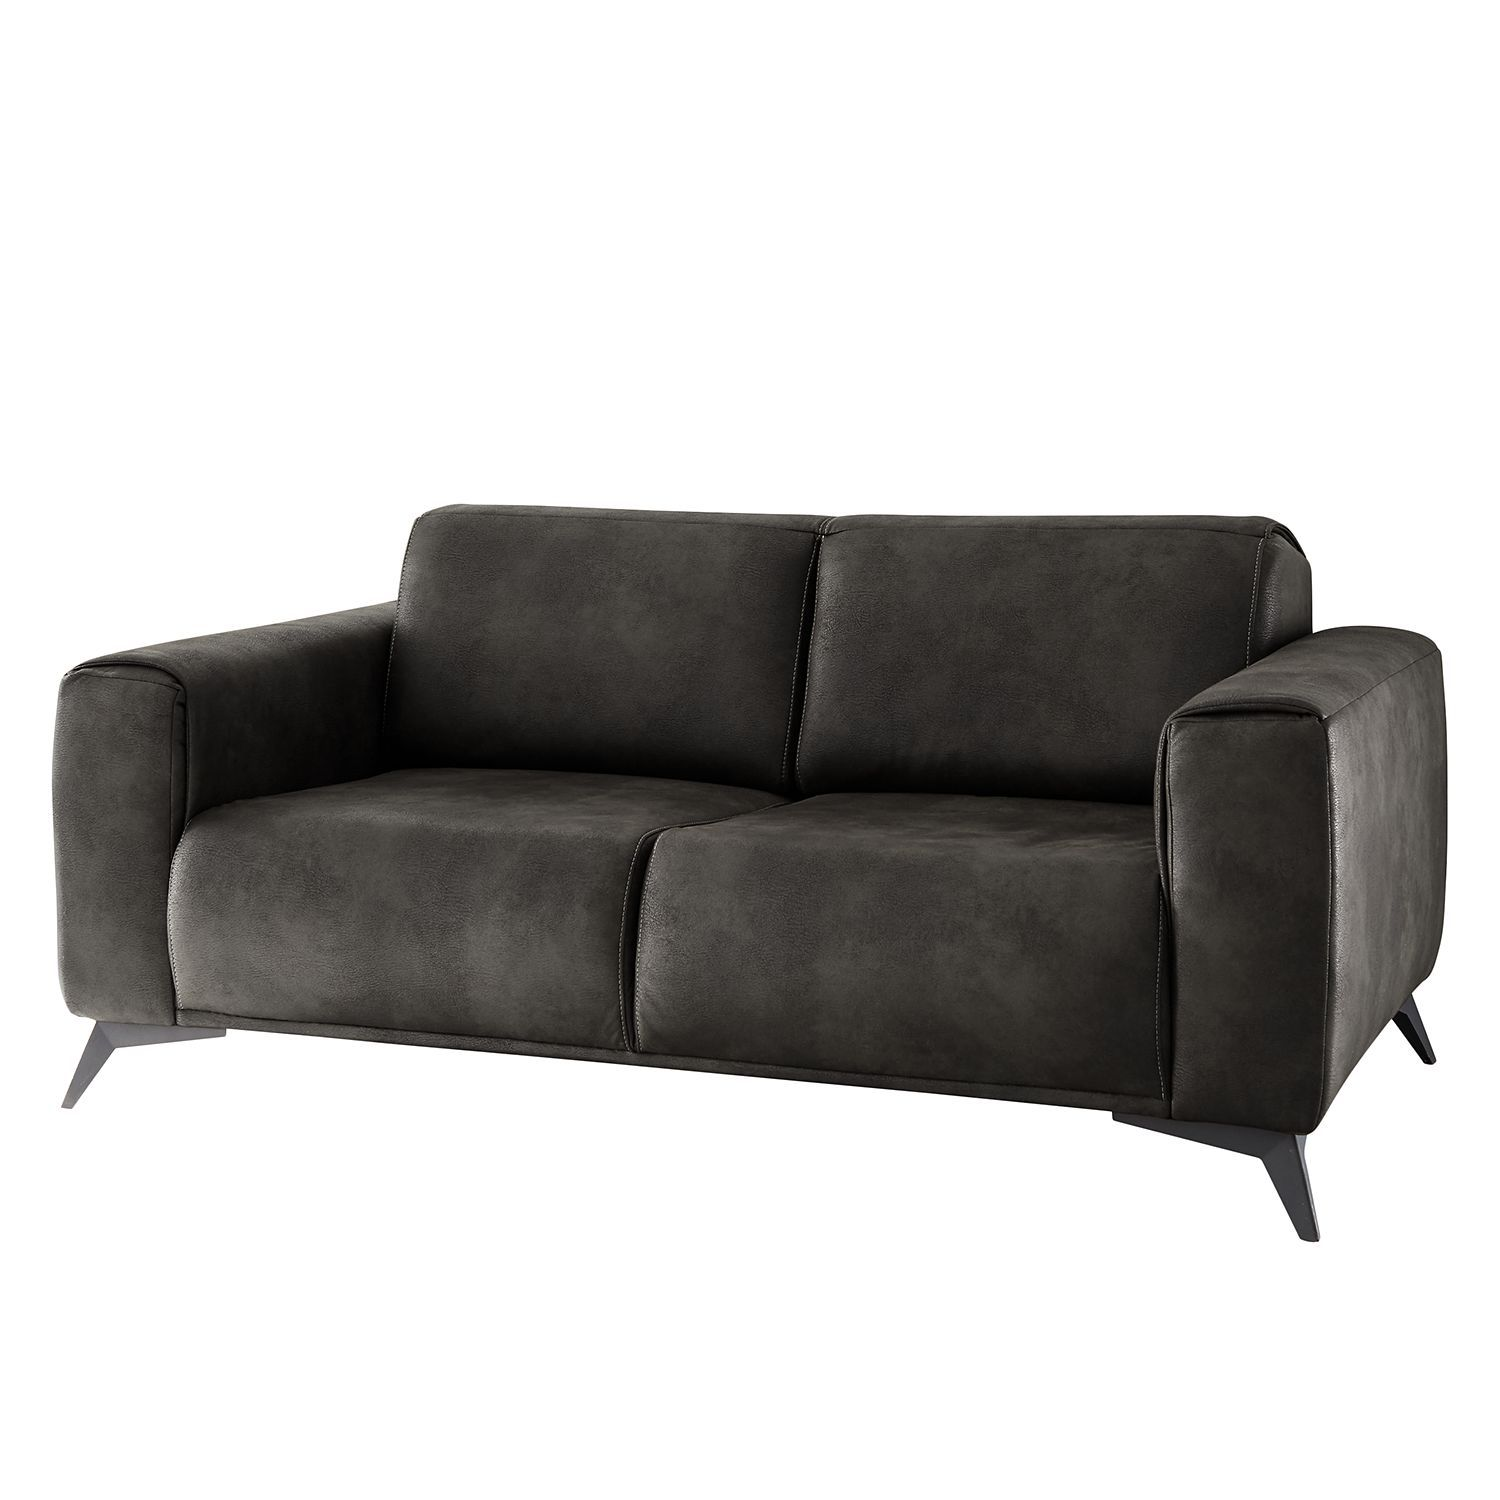 Ecksofa Günstig Klein Sofa Churchill 2 5 Sitzer In 2019 Sofas Sofa Sofa Furniture